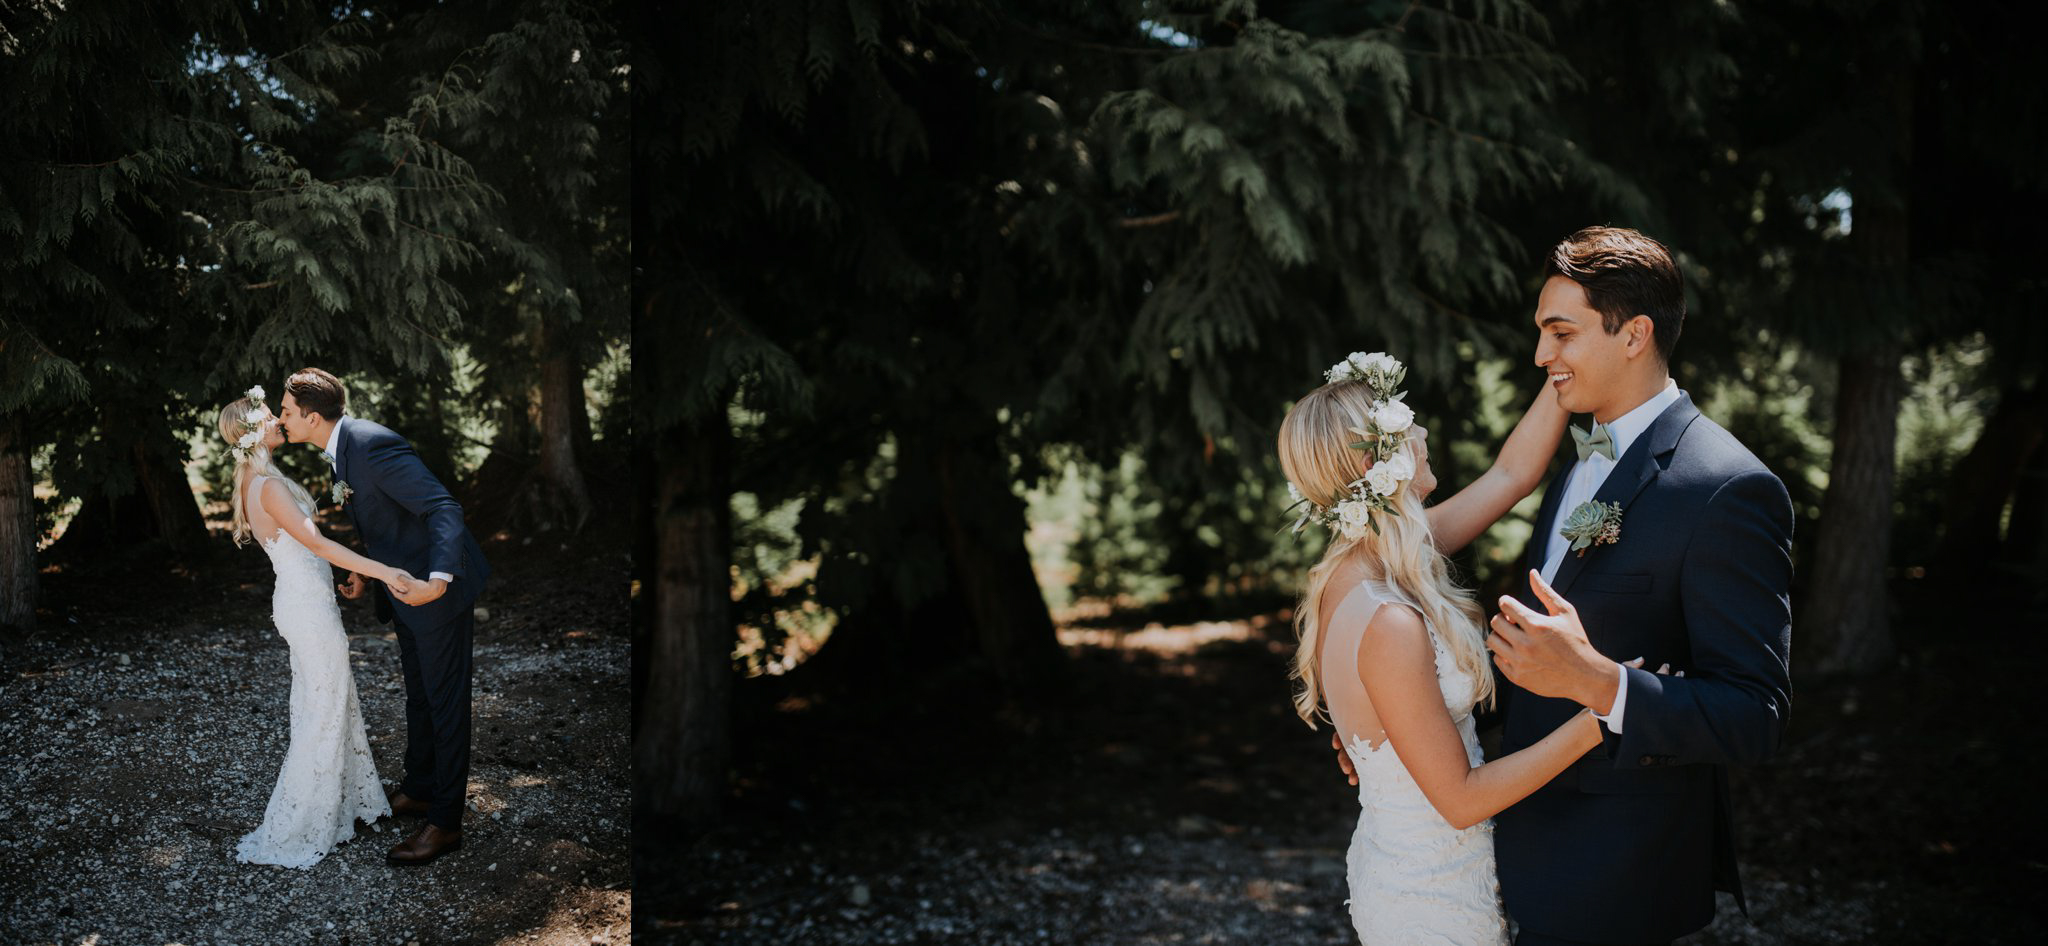 trinity-tree-farm-issaquah-washington-wedding-seattle-lifestyle-photographer-caitlyn-nikula-photography-28.jpg